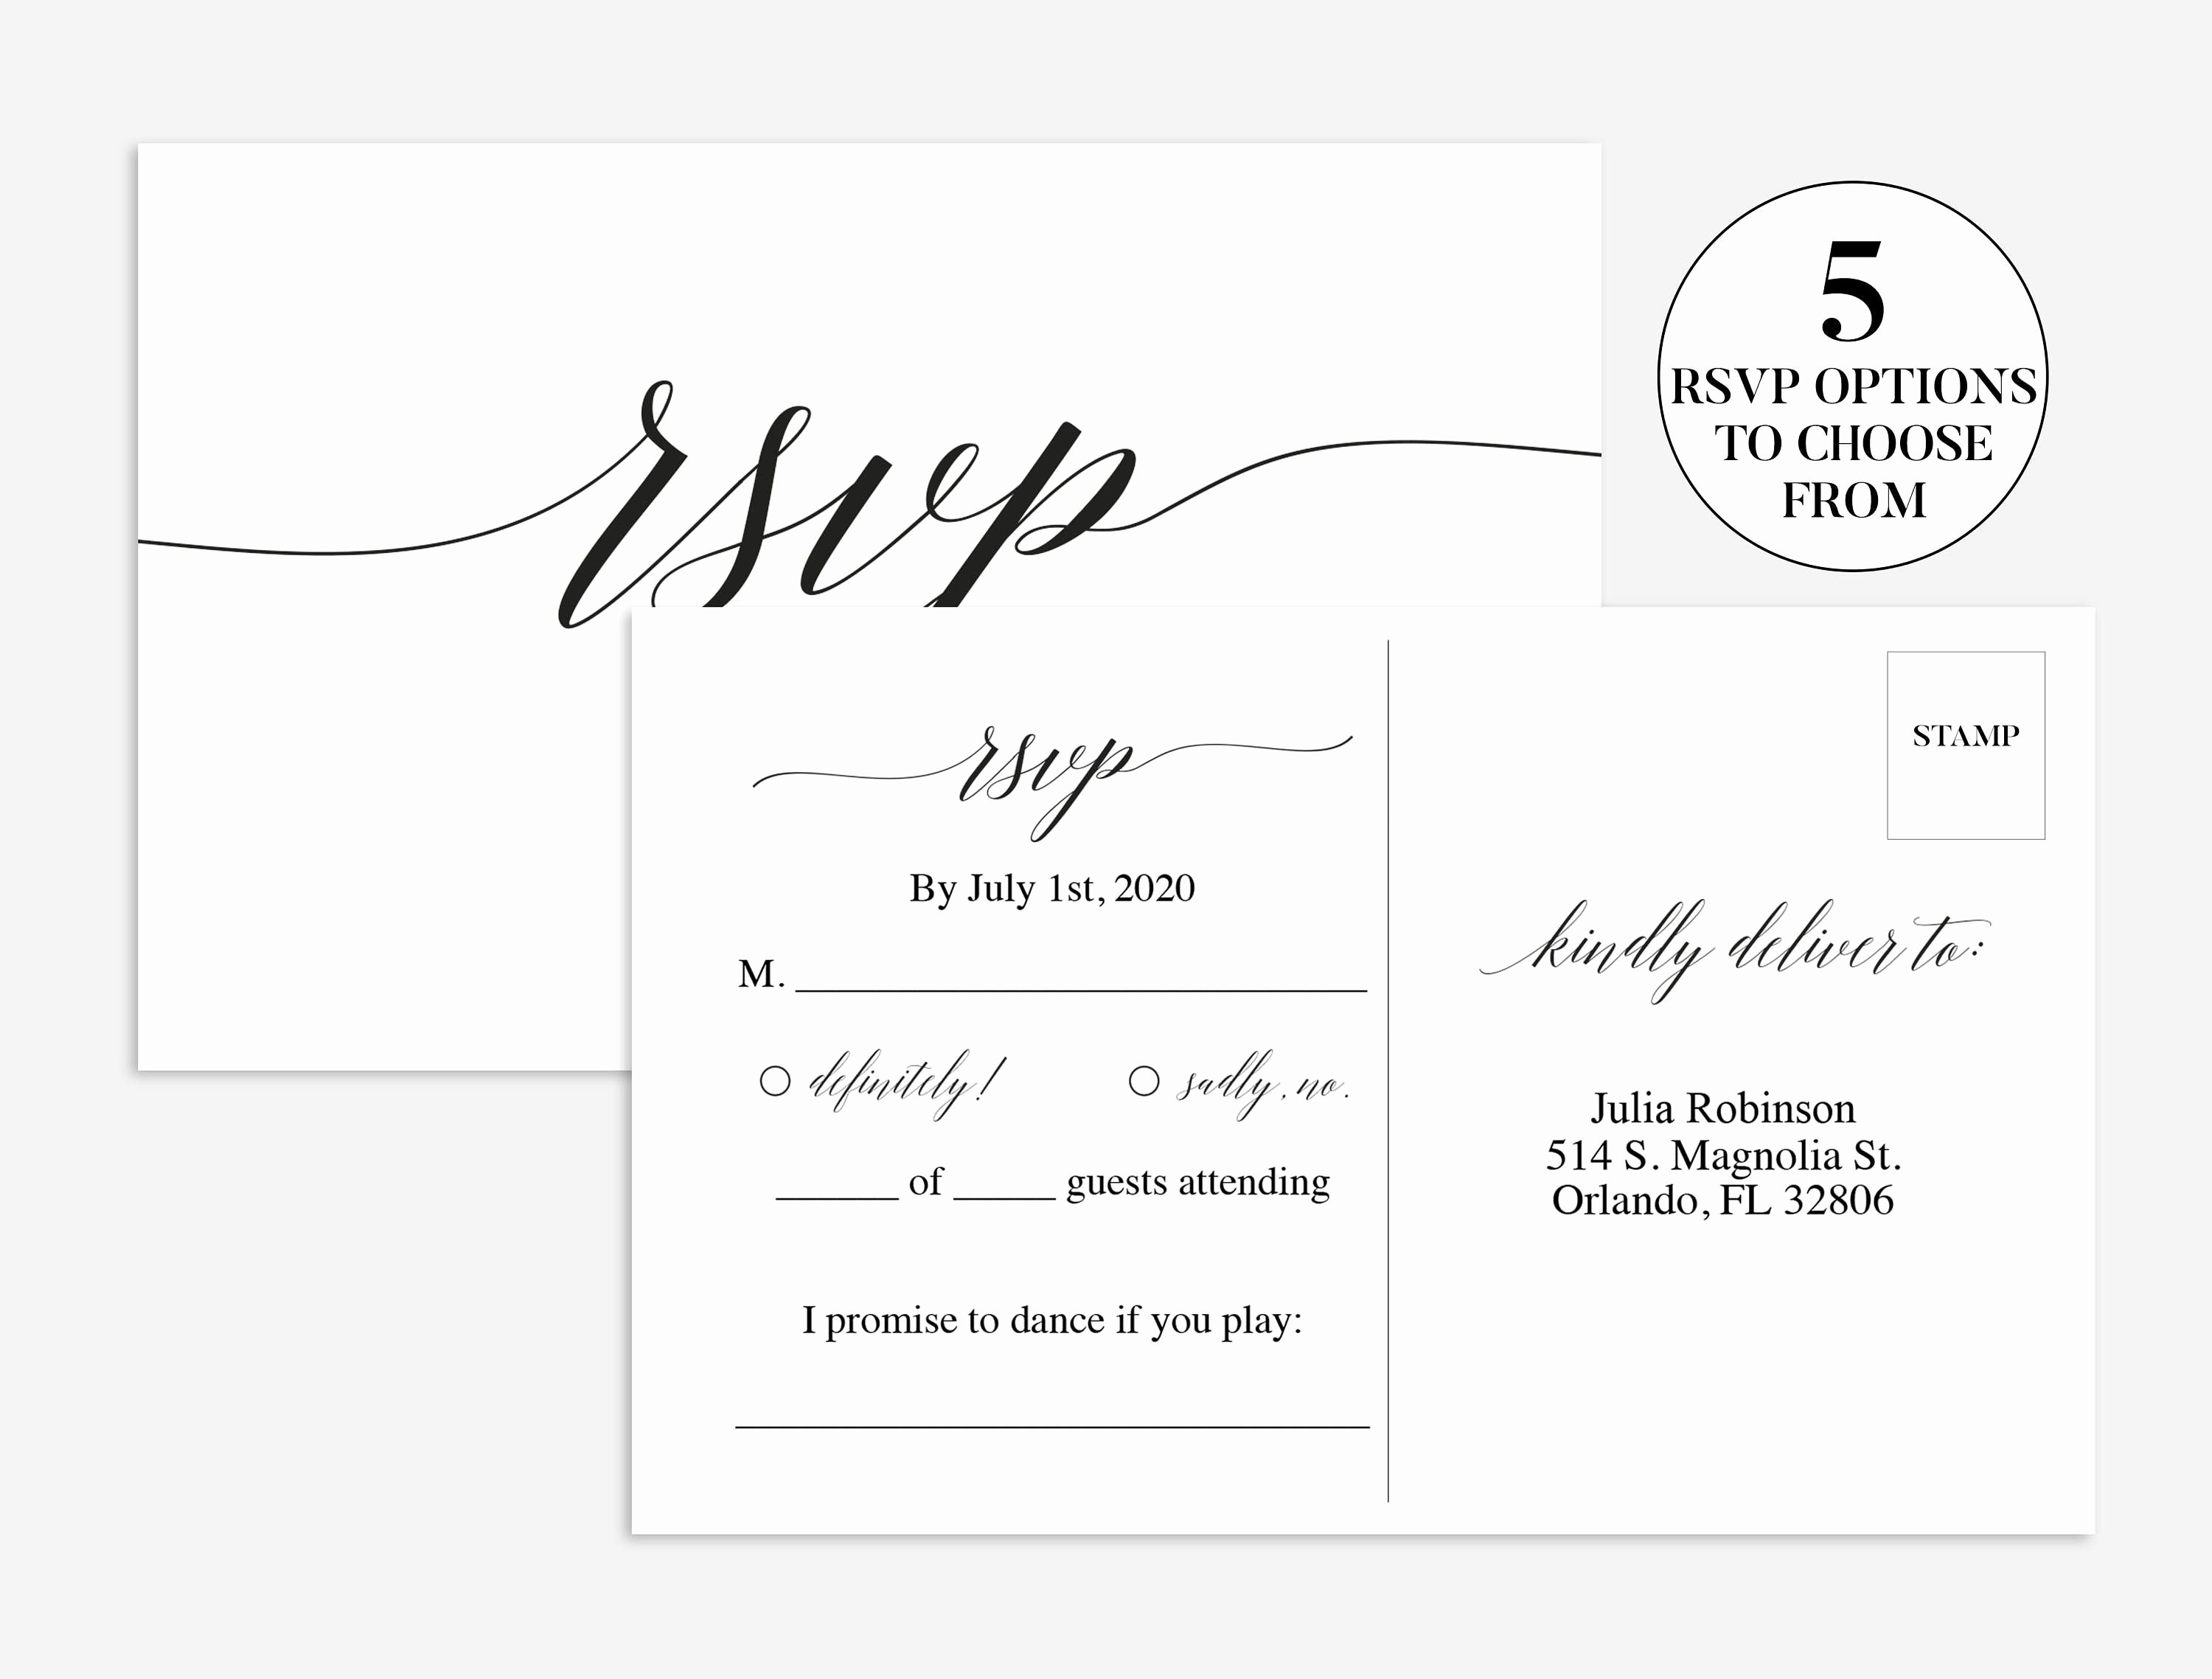 Rsvp Postcard Template Free Best Of Wedding Rsvp Card Wedding Rsvp Template